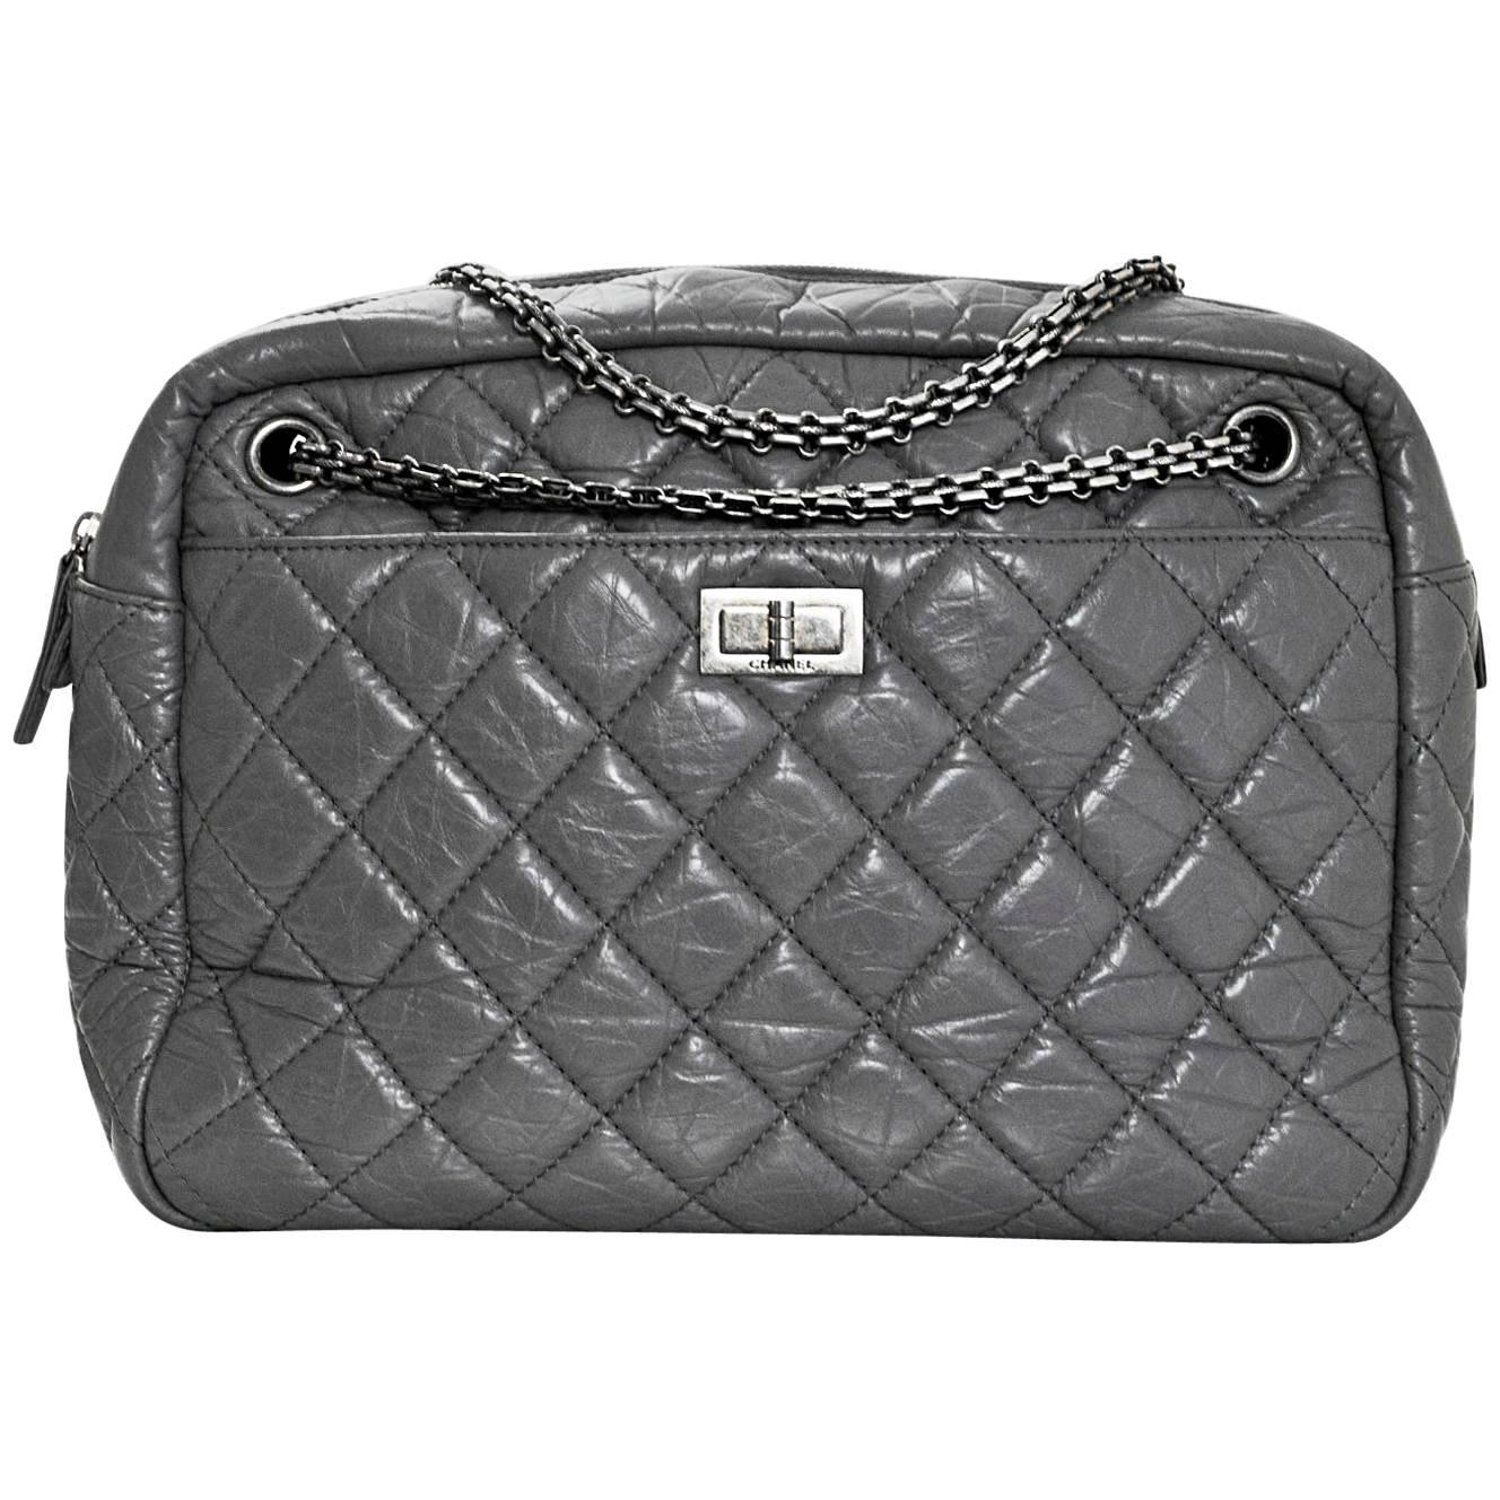 68e73735e3a8 Chanel Grey Quilted Aged Calfskin Leather Large Reissue 2.55 Camera Case Bag